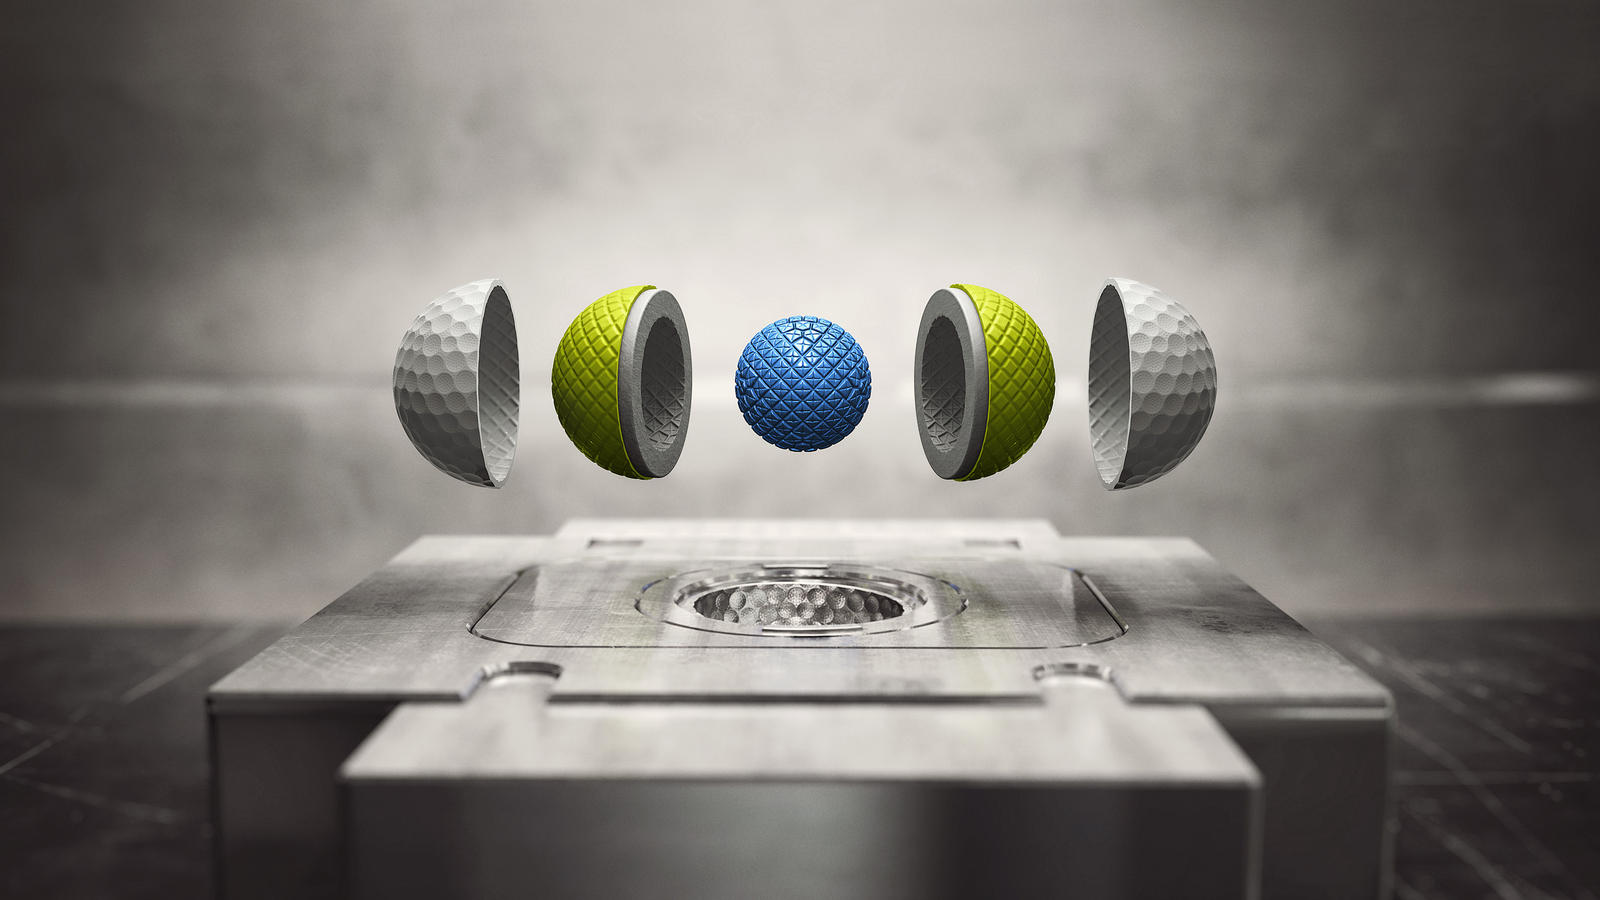 Innovation Shapes the New Nike RZN Tour Golf Ball - Nike News